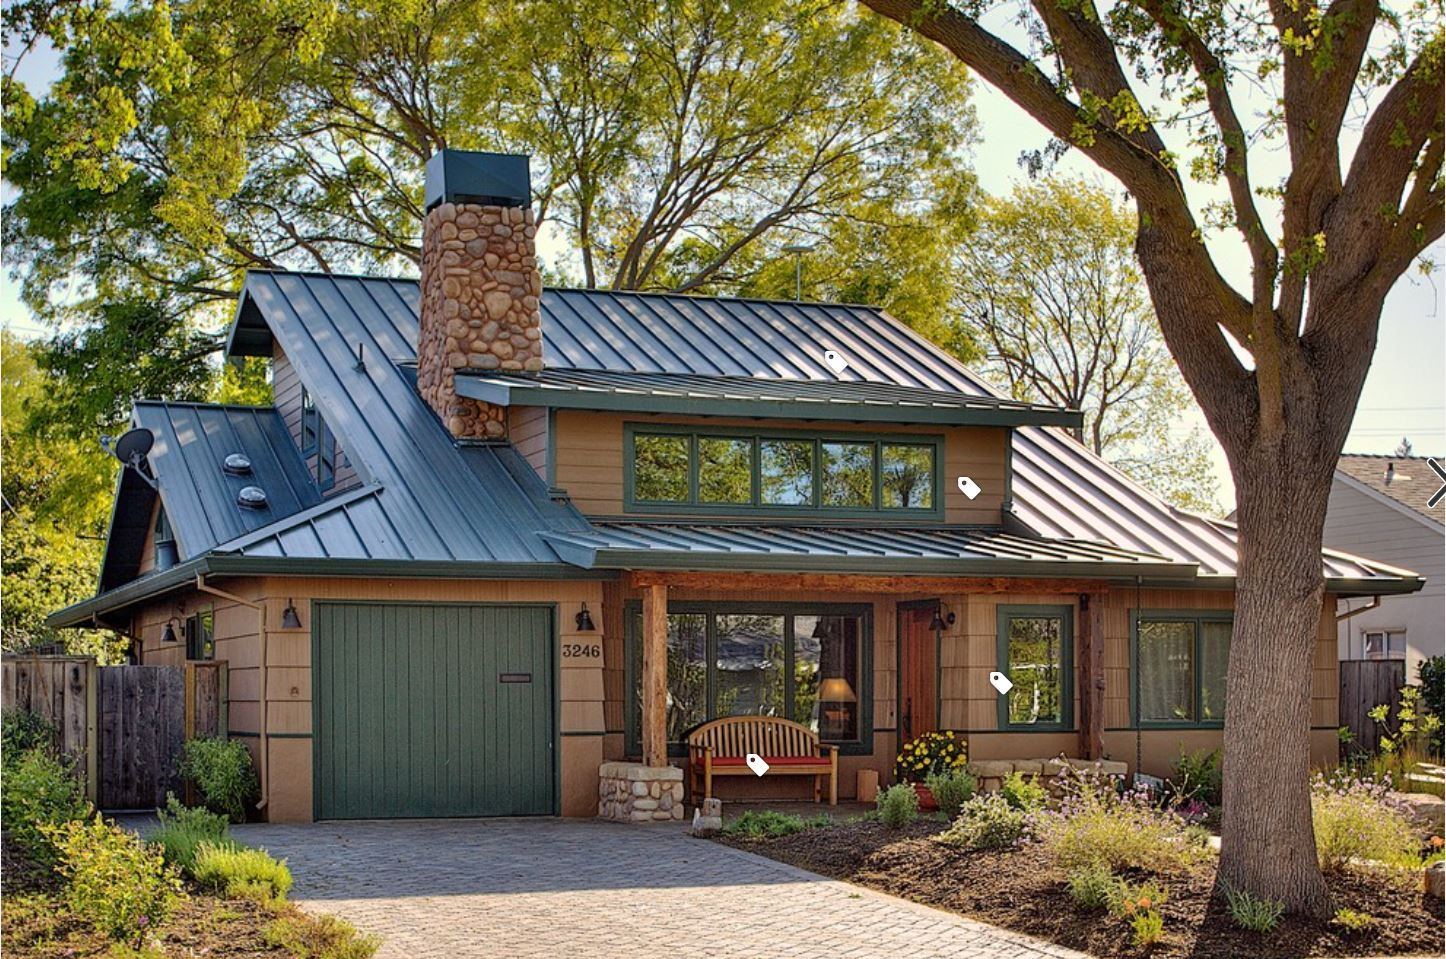 Full View Of Beautiful Home With Green Roof Green Roof House Metal Roof Houses Exterior Paint Colors For House